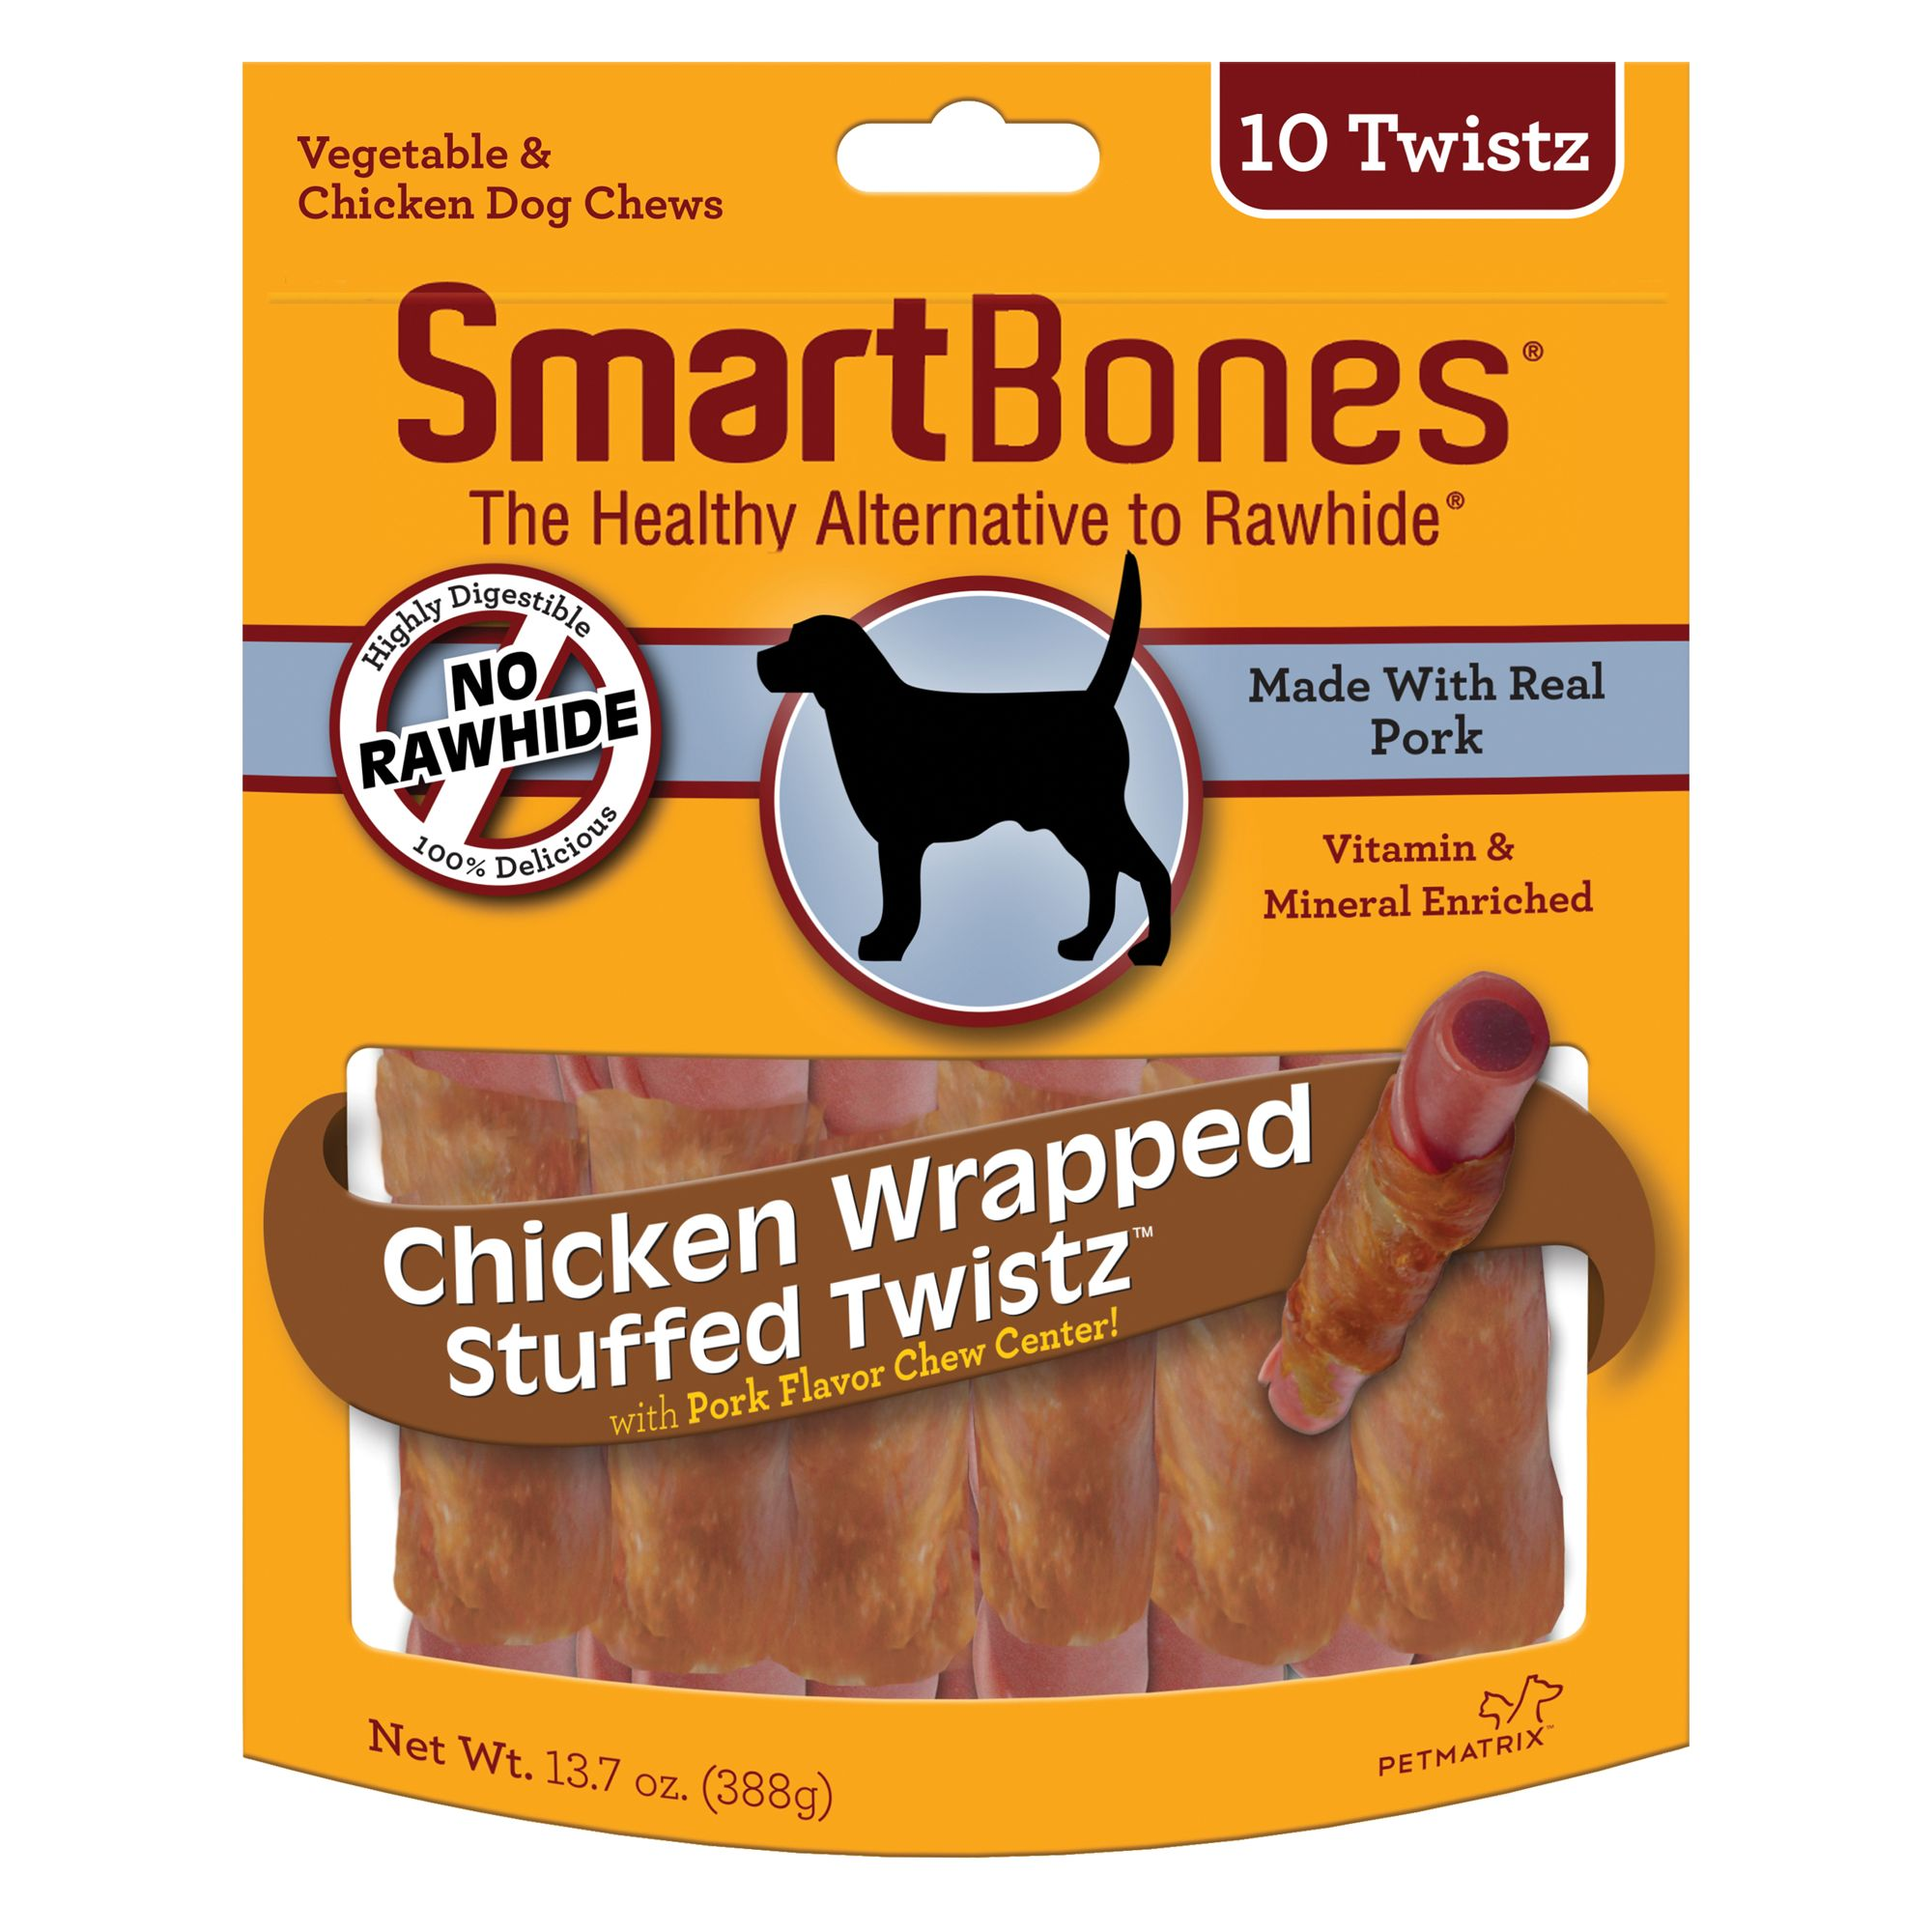 Smartbones Chicken Wrapped Stuffed Twistz With Pork Dog Treat Size 10 Count